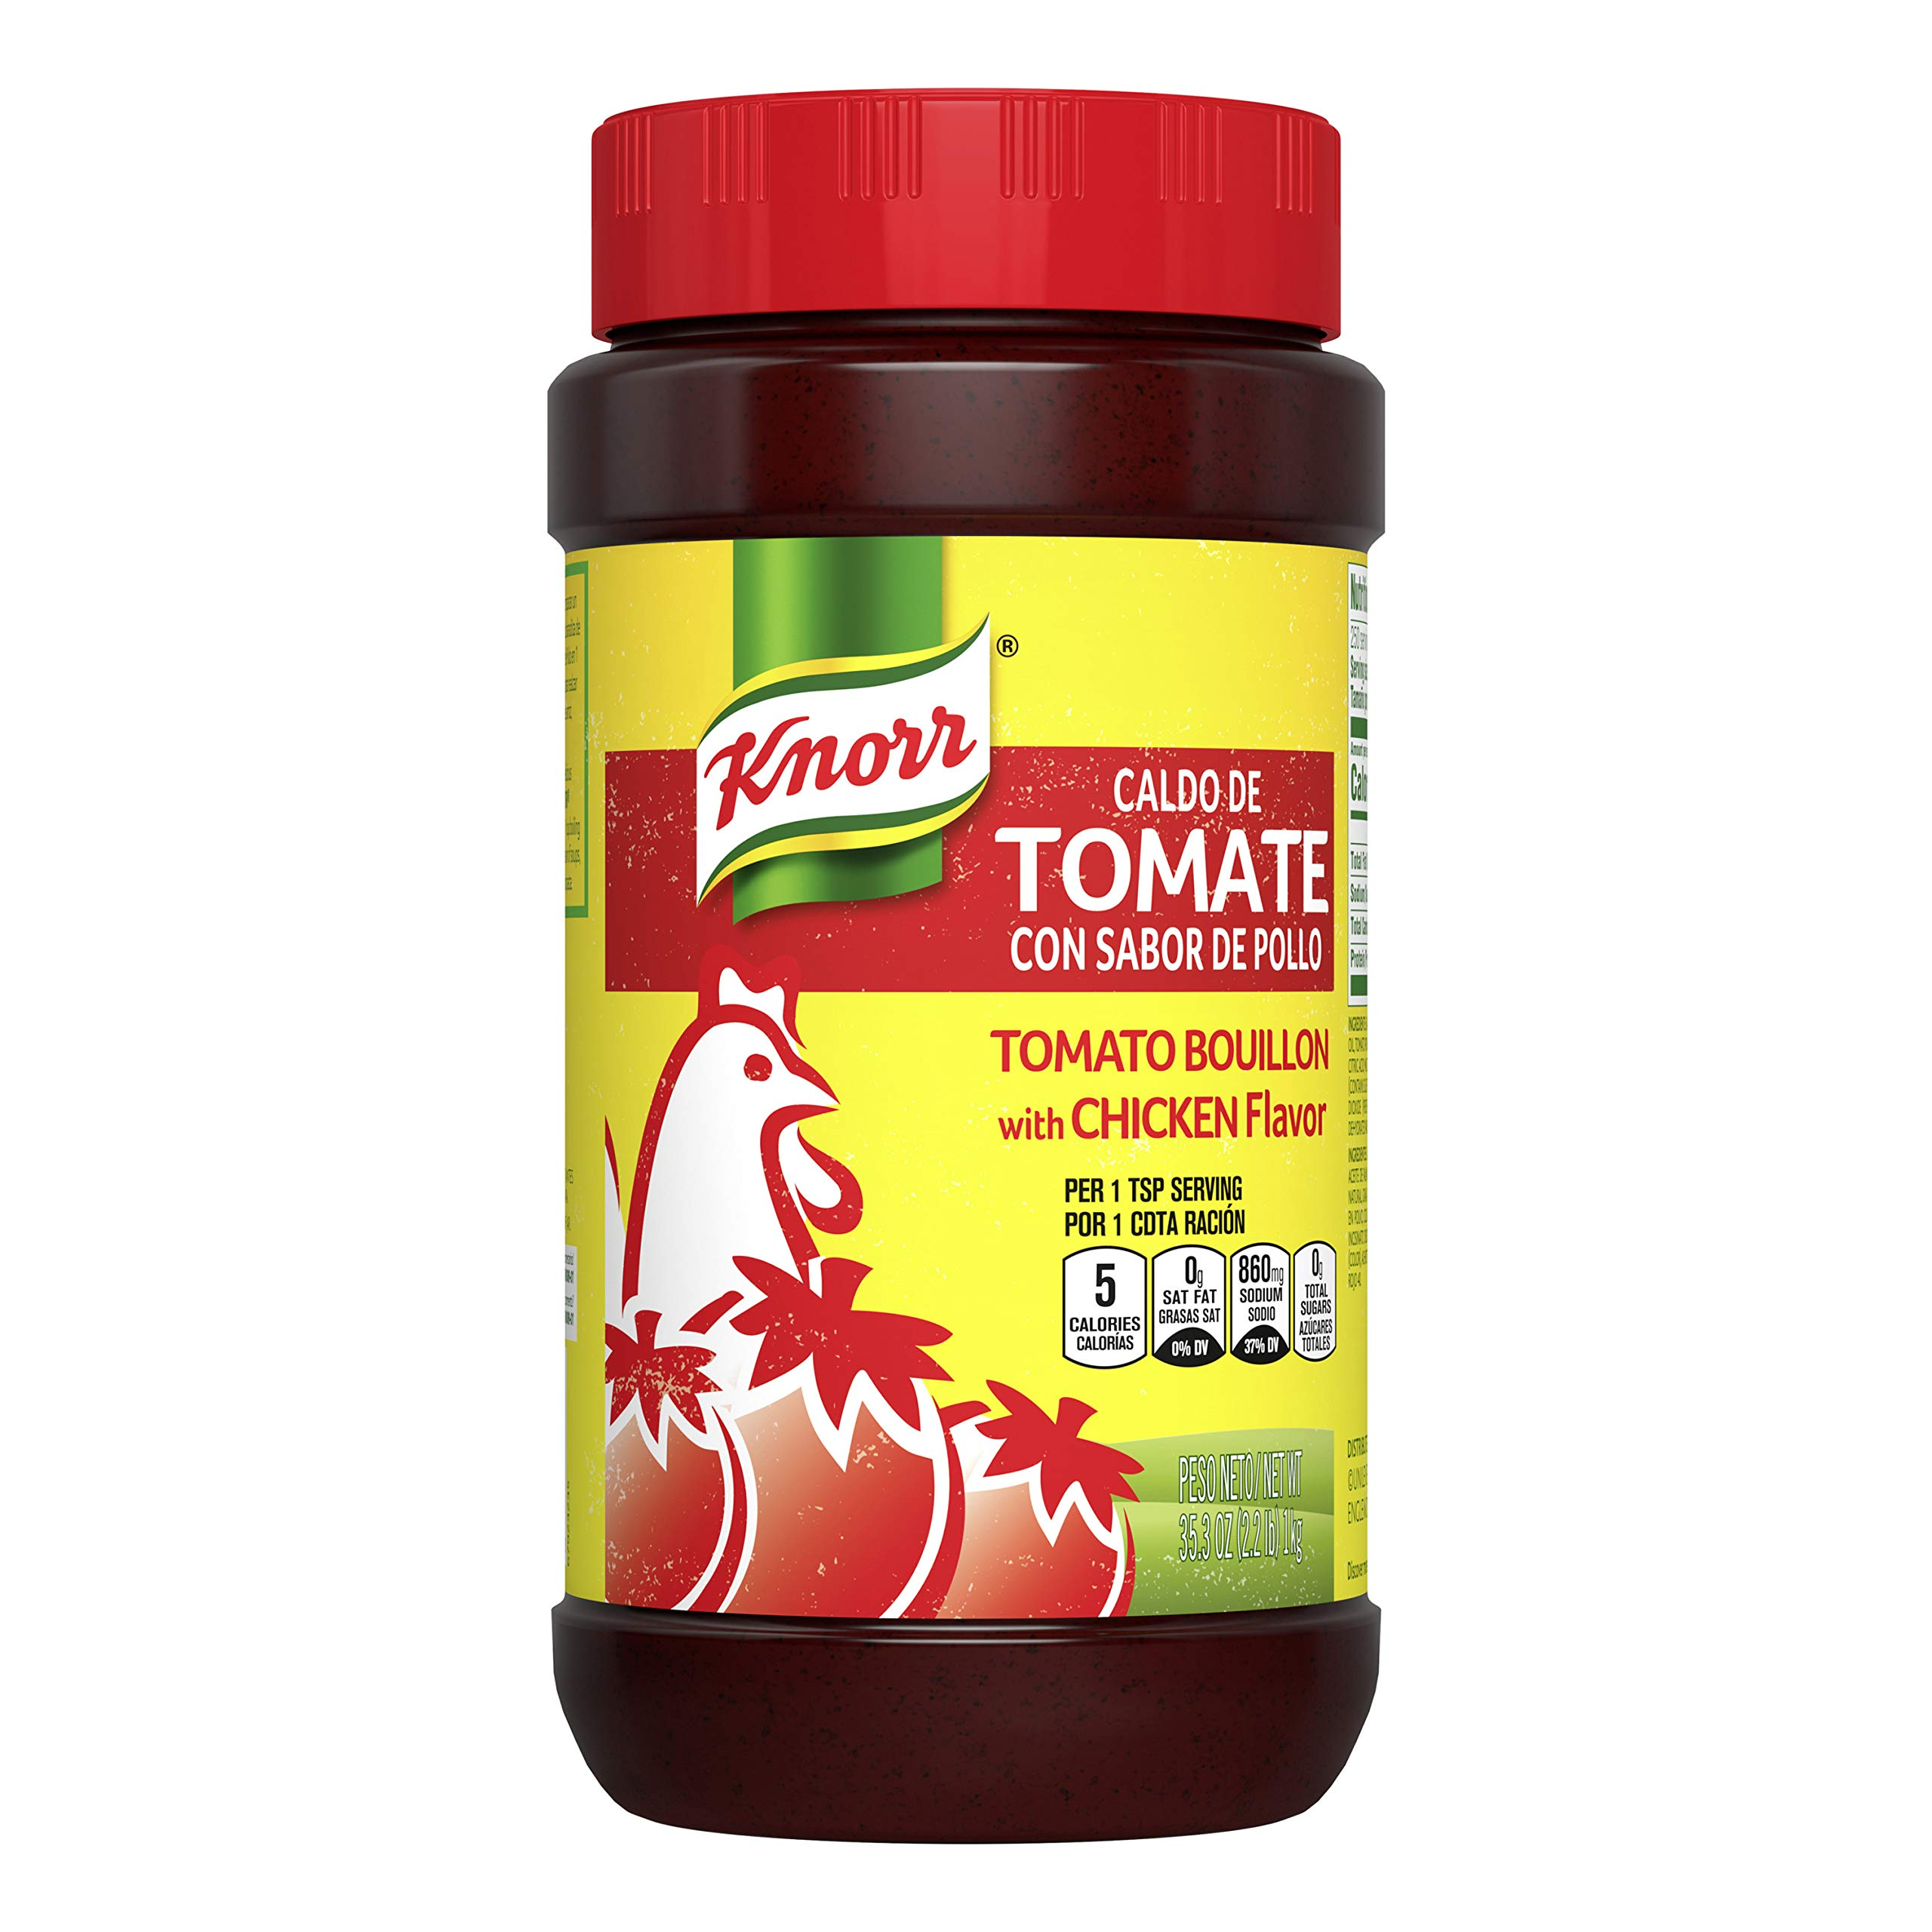 Knorr Caldo De Tomate Mexican Tomato and Chicken Bouillon, 35.3-Ounce